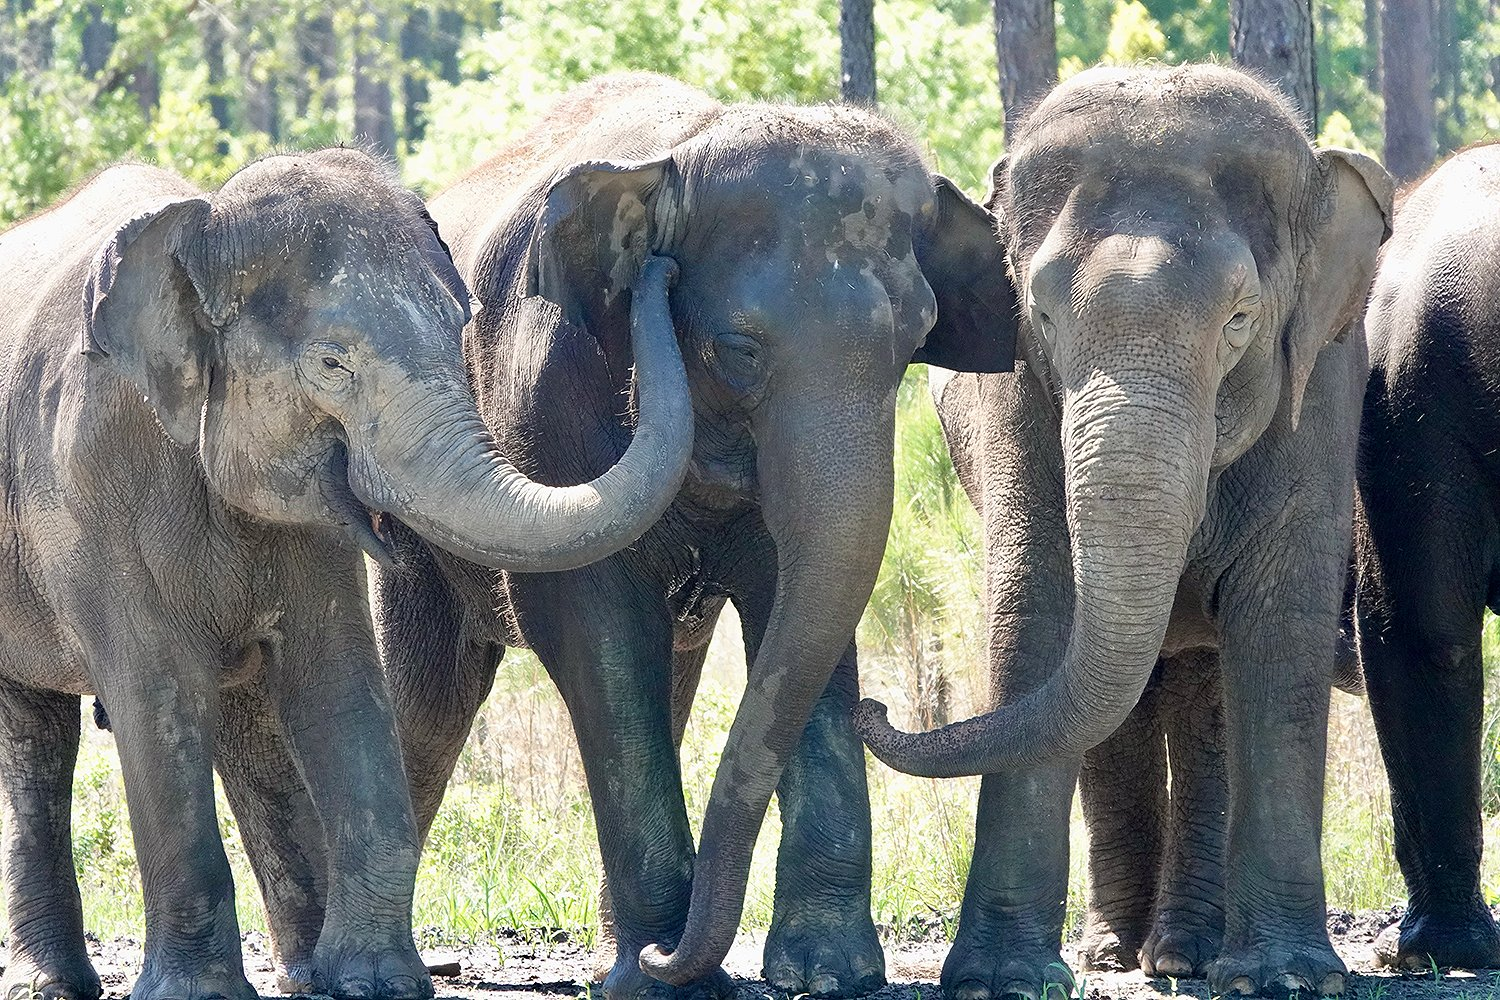 Retired Circus Elephants Move To New Home With Plenty Of Room To Explore